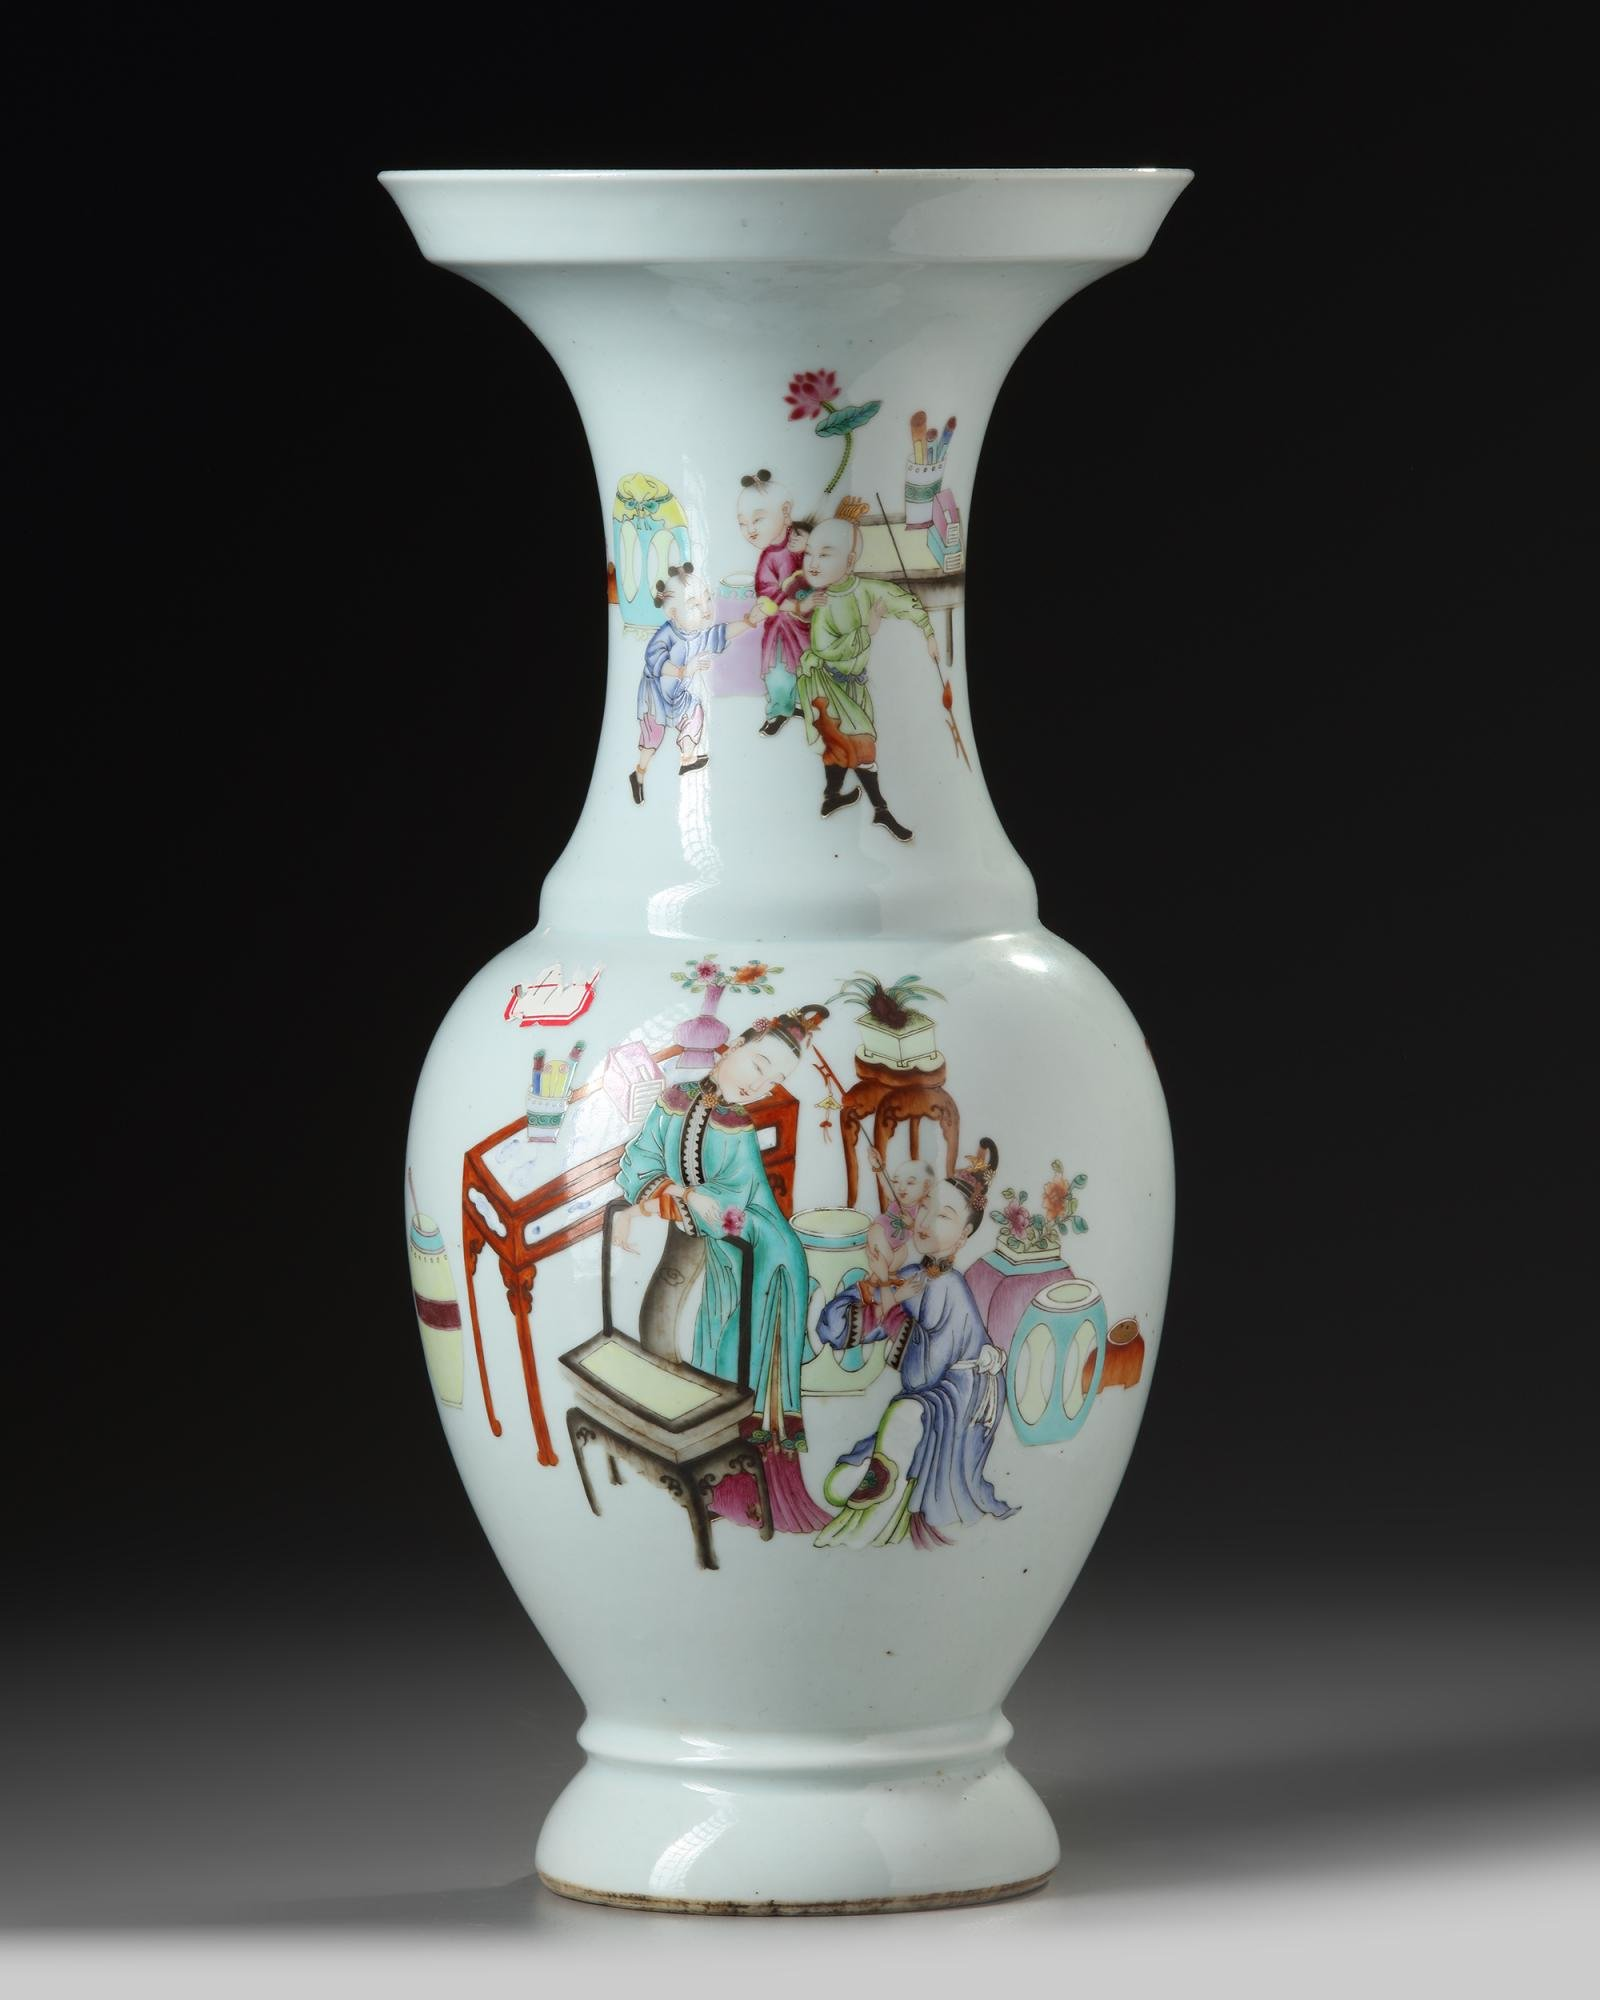 A CHINESE FAMILLE ROSE VASE, CHINA, 19TH-20TH CENTURY